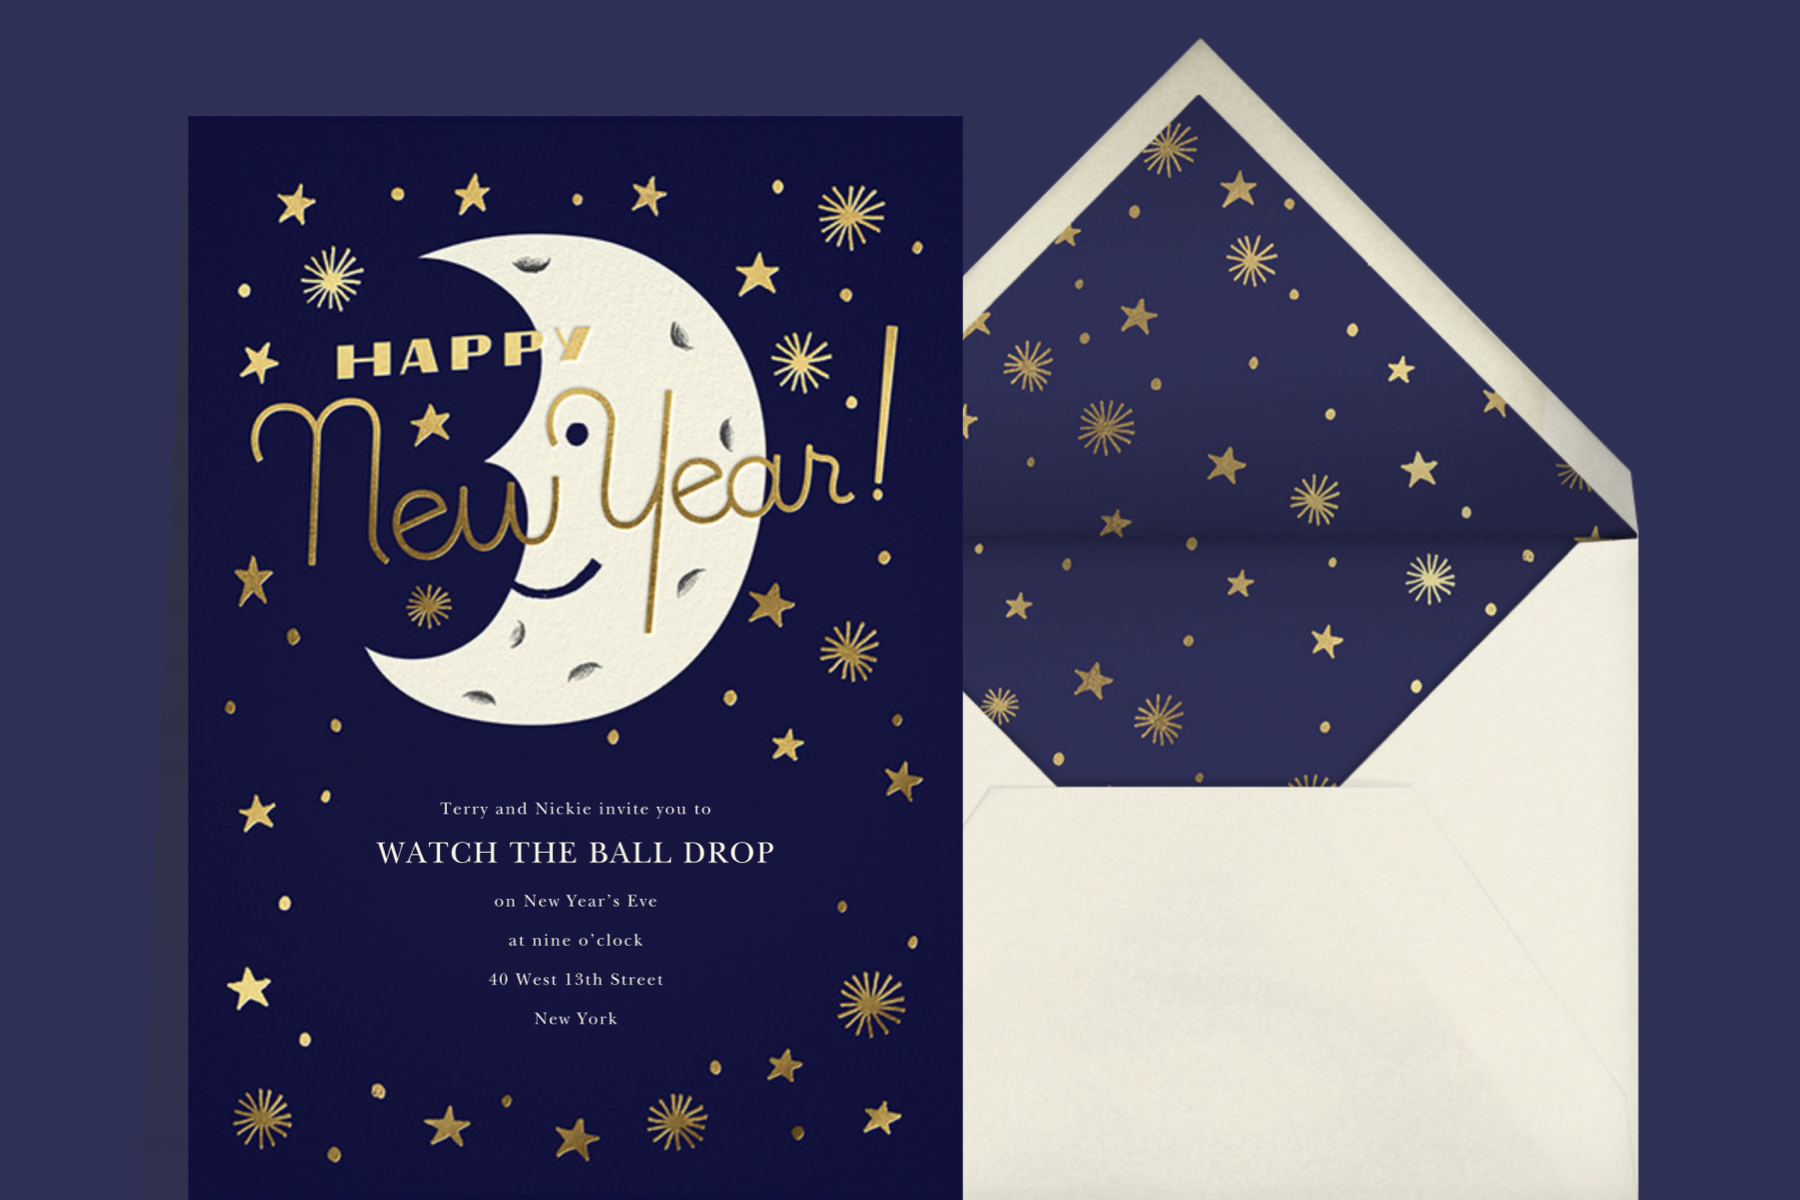 New Year's eve party invitation from Paperless Post featuring a smiling white moon on a blue celestial background